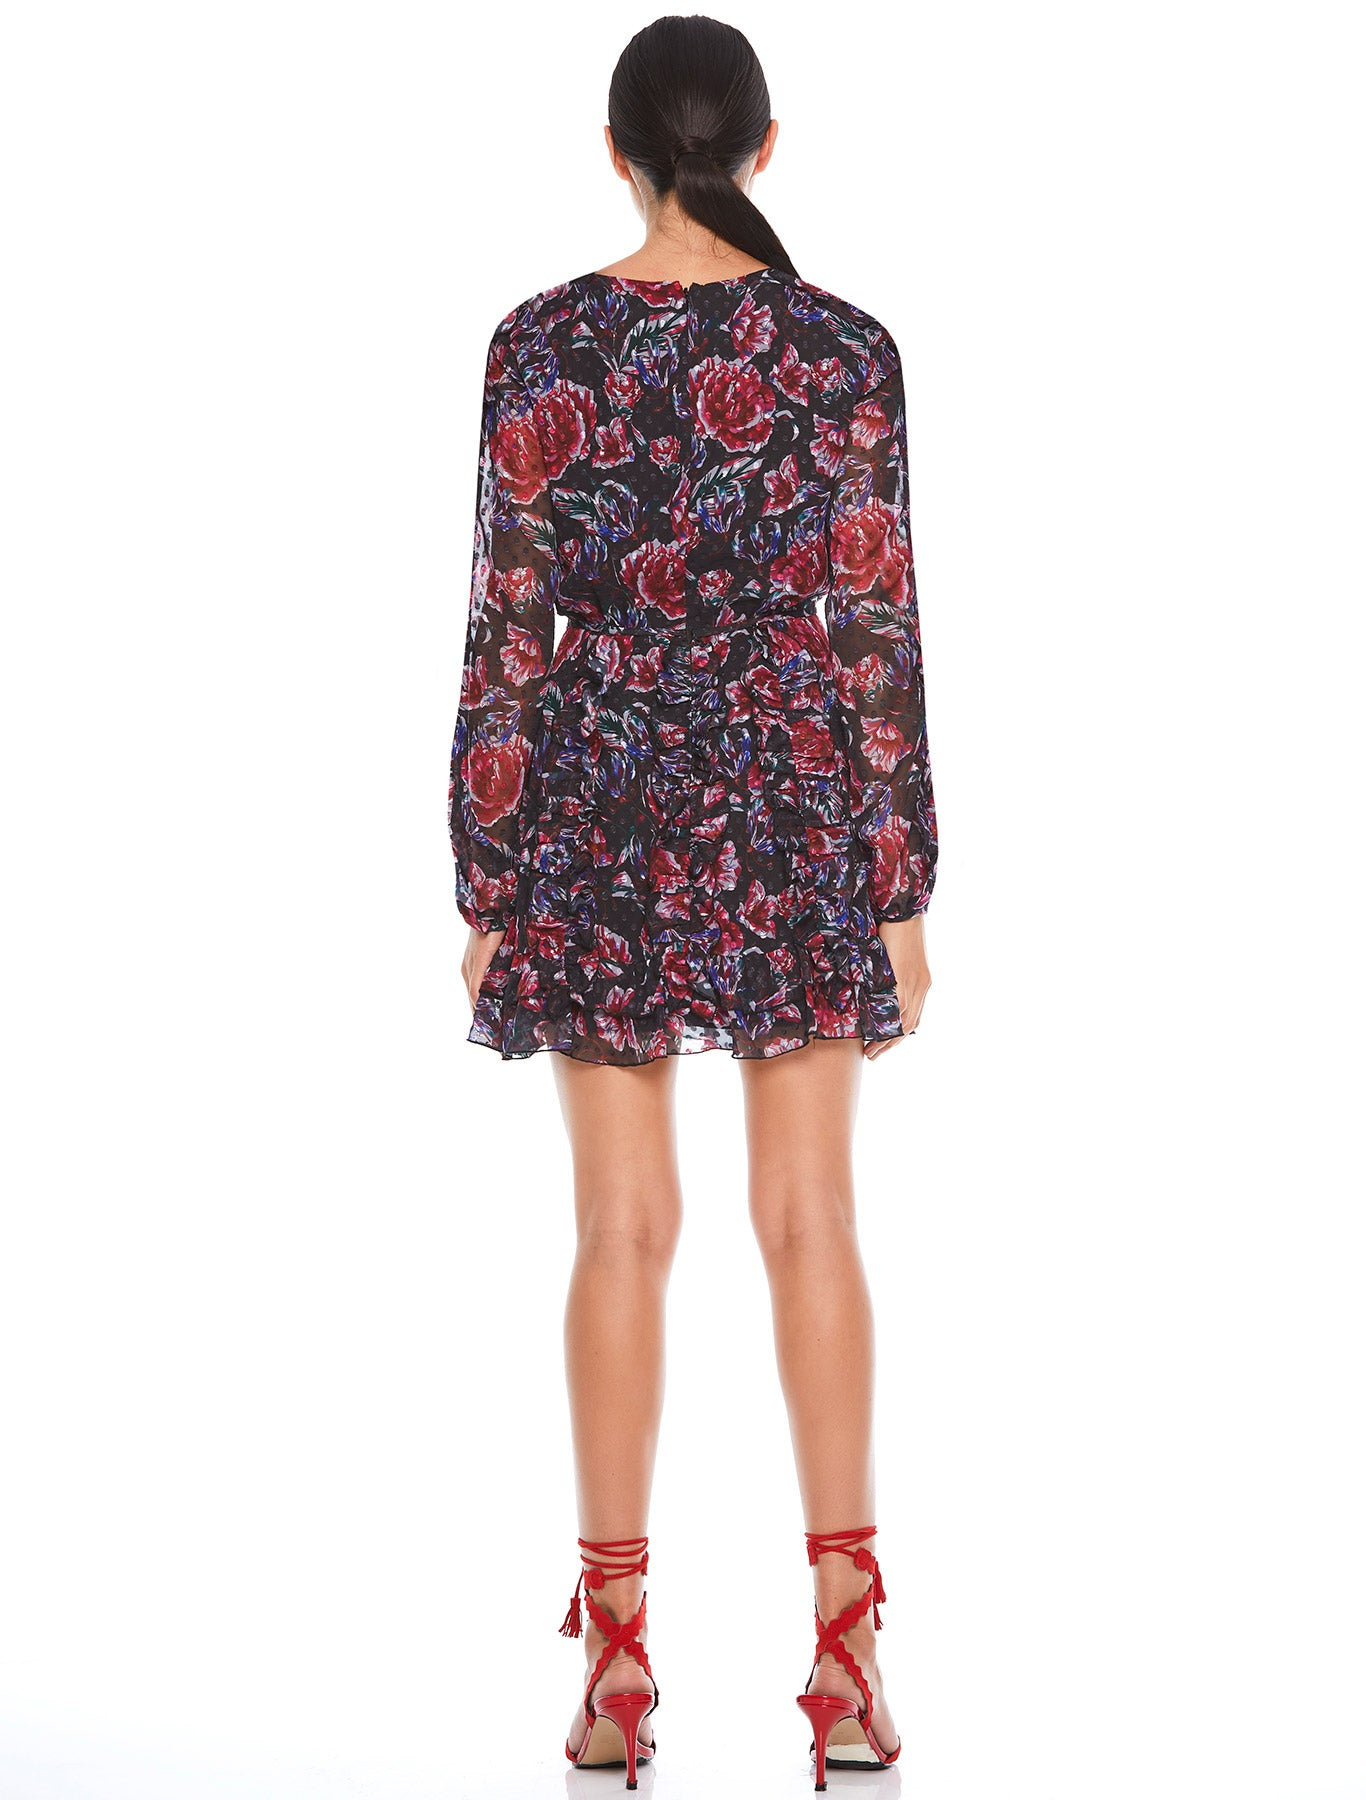 ARDOUR L/S MINI DRESS